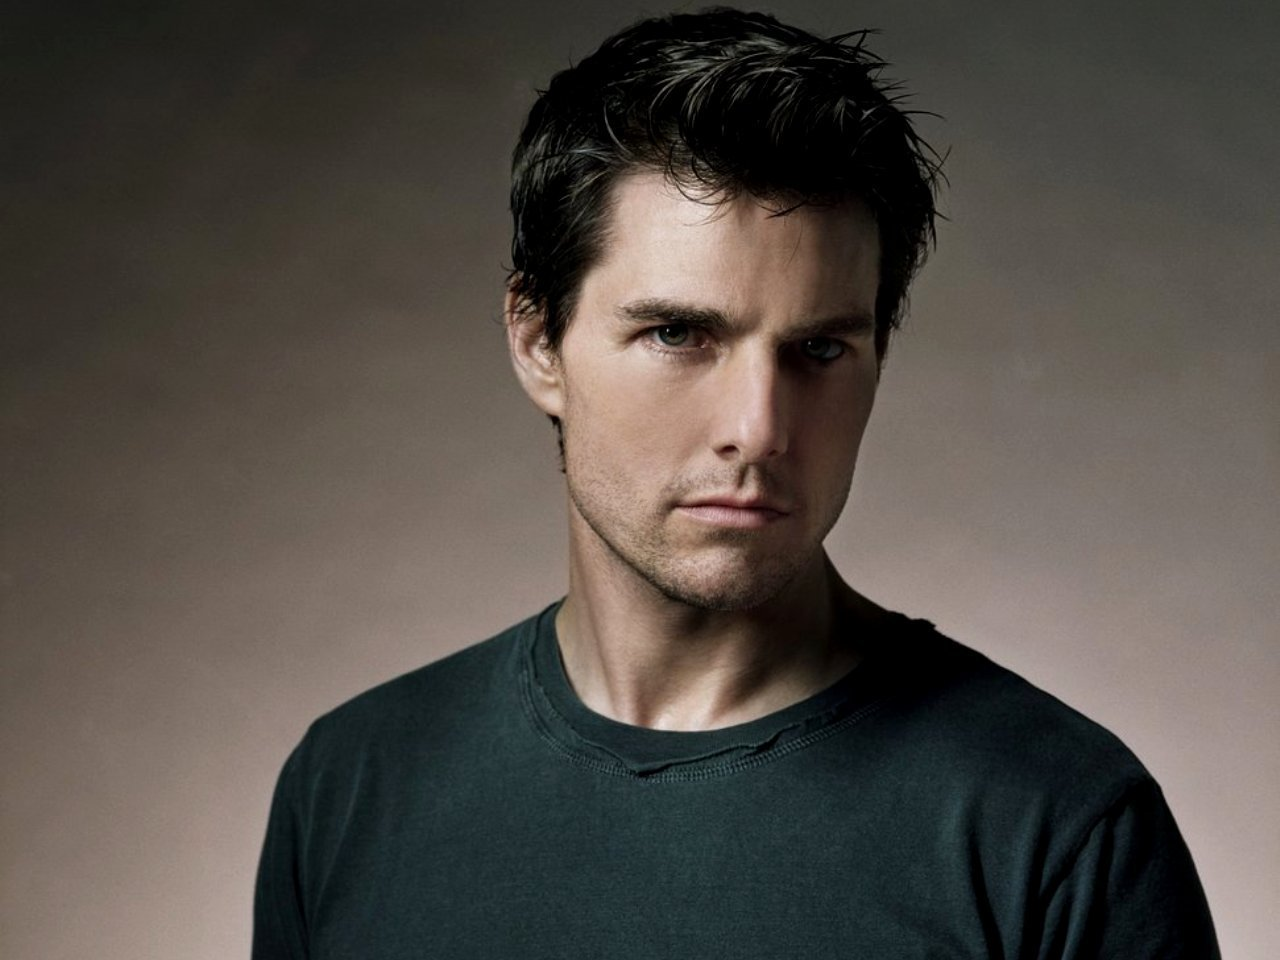 tom cruise Other winners include tom cruise (for his role in the mummy) and, named worst actress, tyler perry for boo 2 a madea halloween mel gibson, kim basinger and baywatch were among the other razzie honorees.